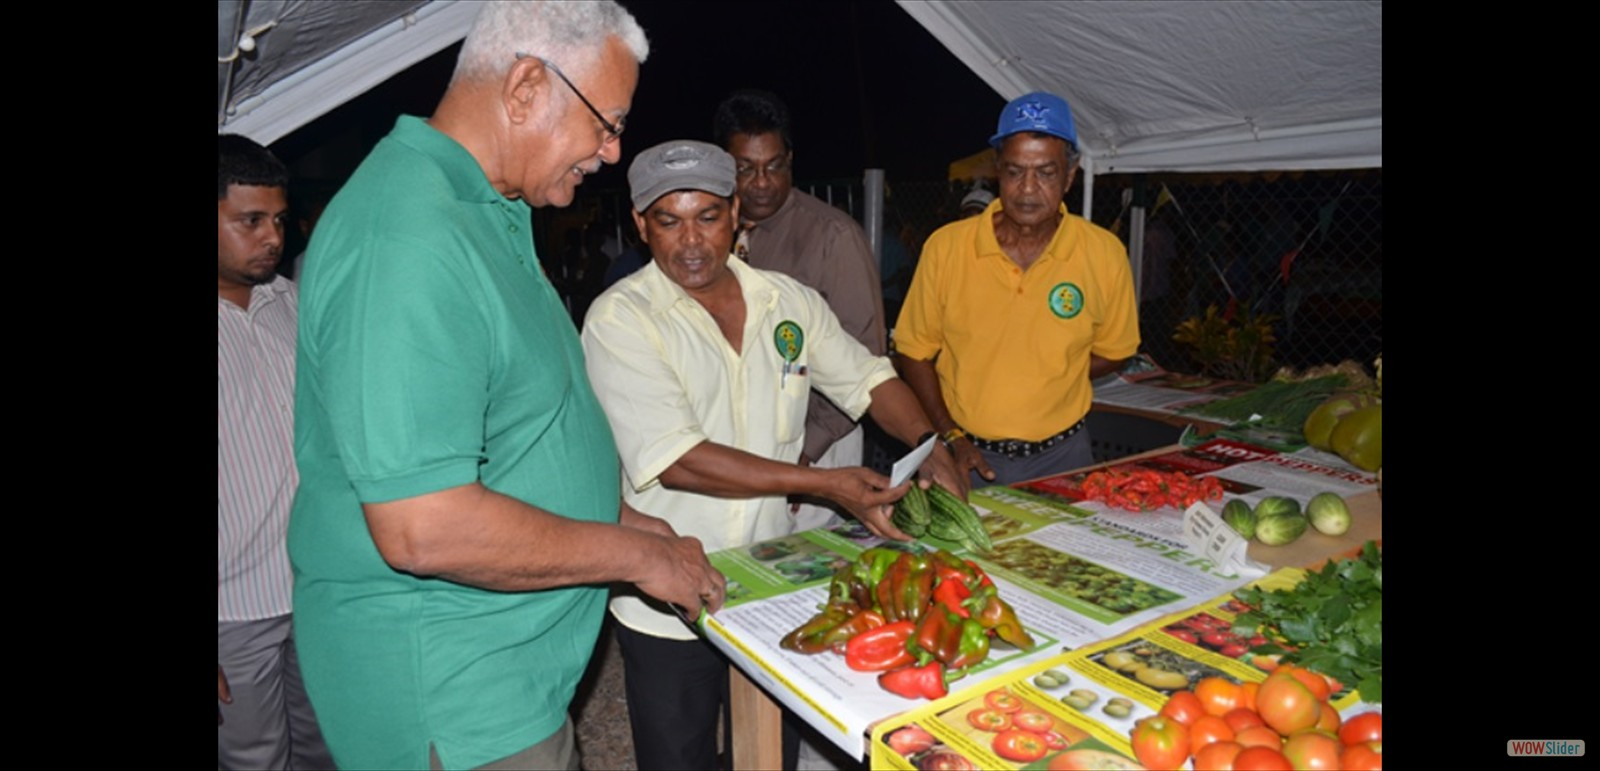 Agriculture Minister Noel Holder during his visit to one of the many booths at the MMA open day exhibition